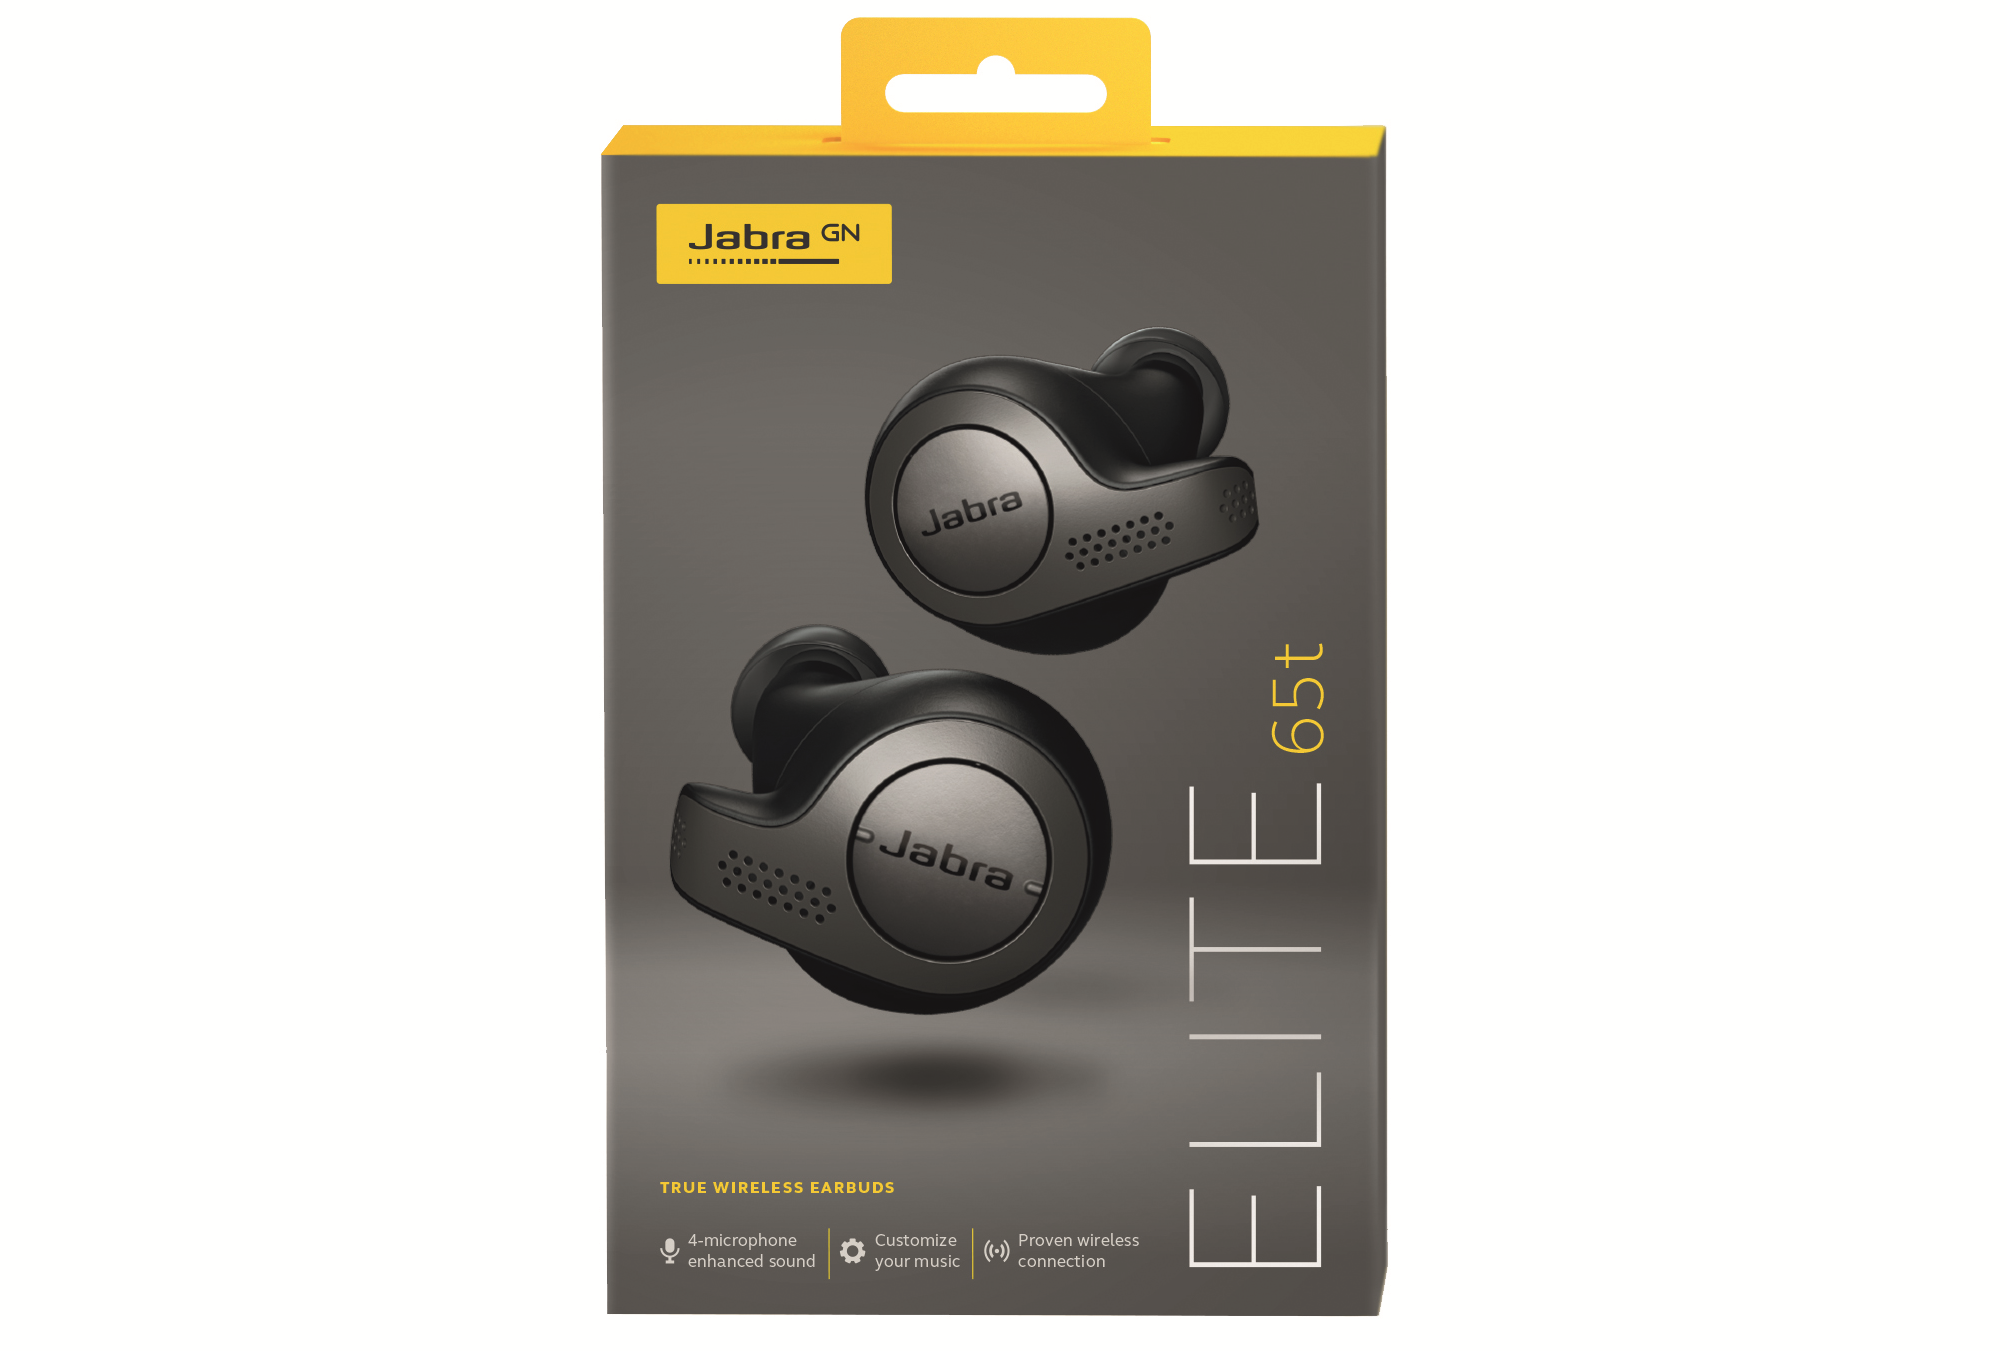 The Jabra Elite 65t True Wireless Earbuds